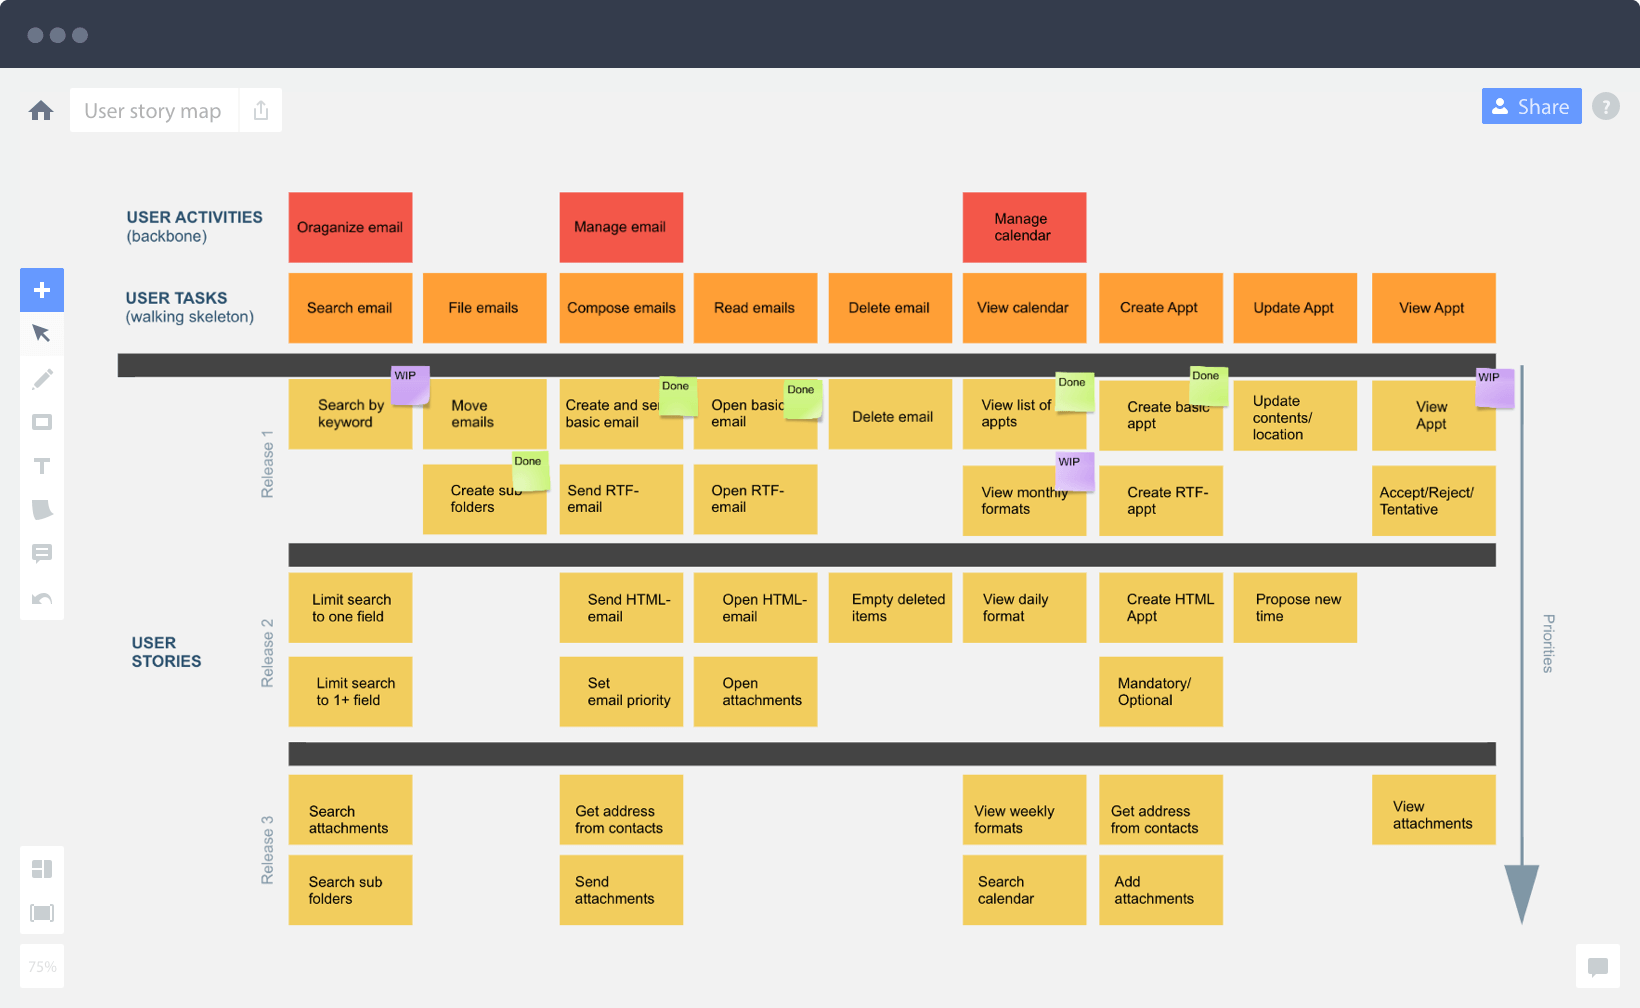 User story map